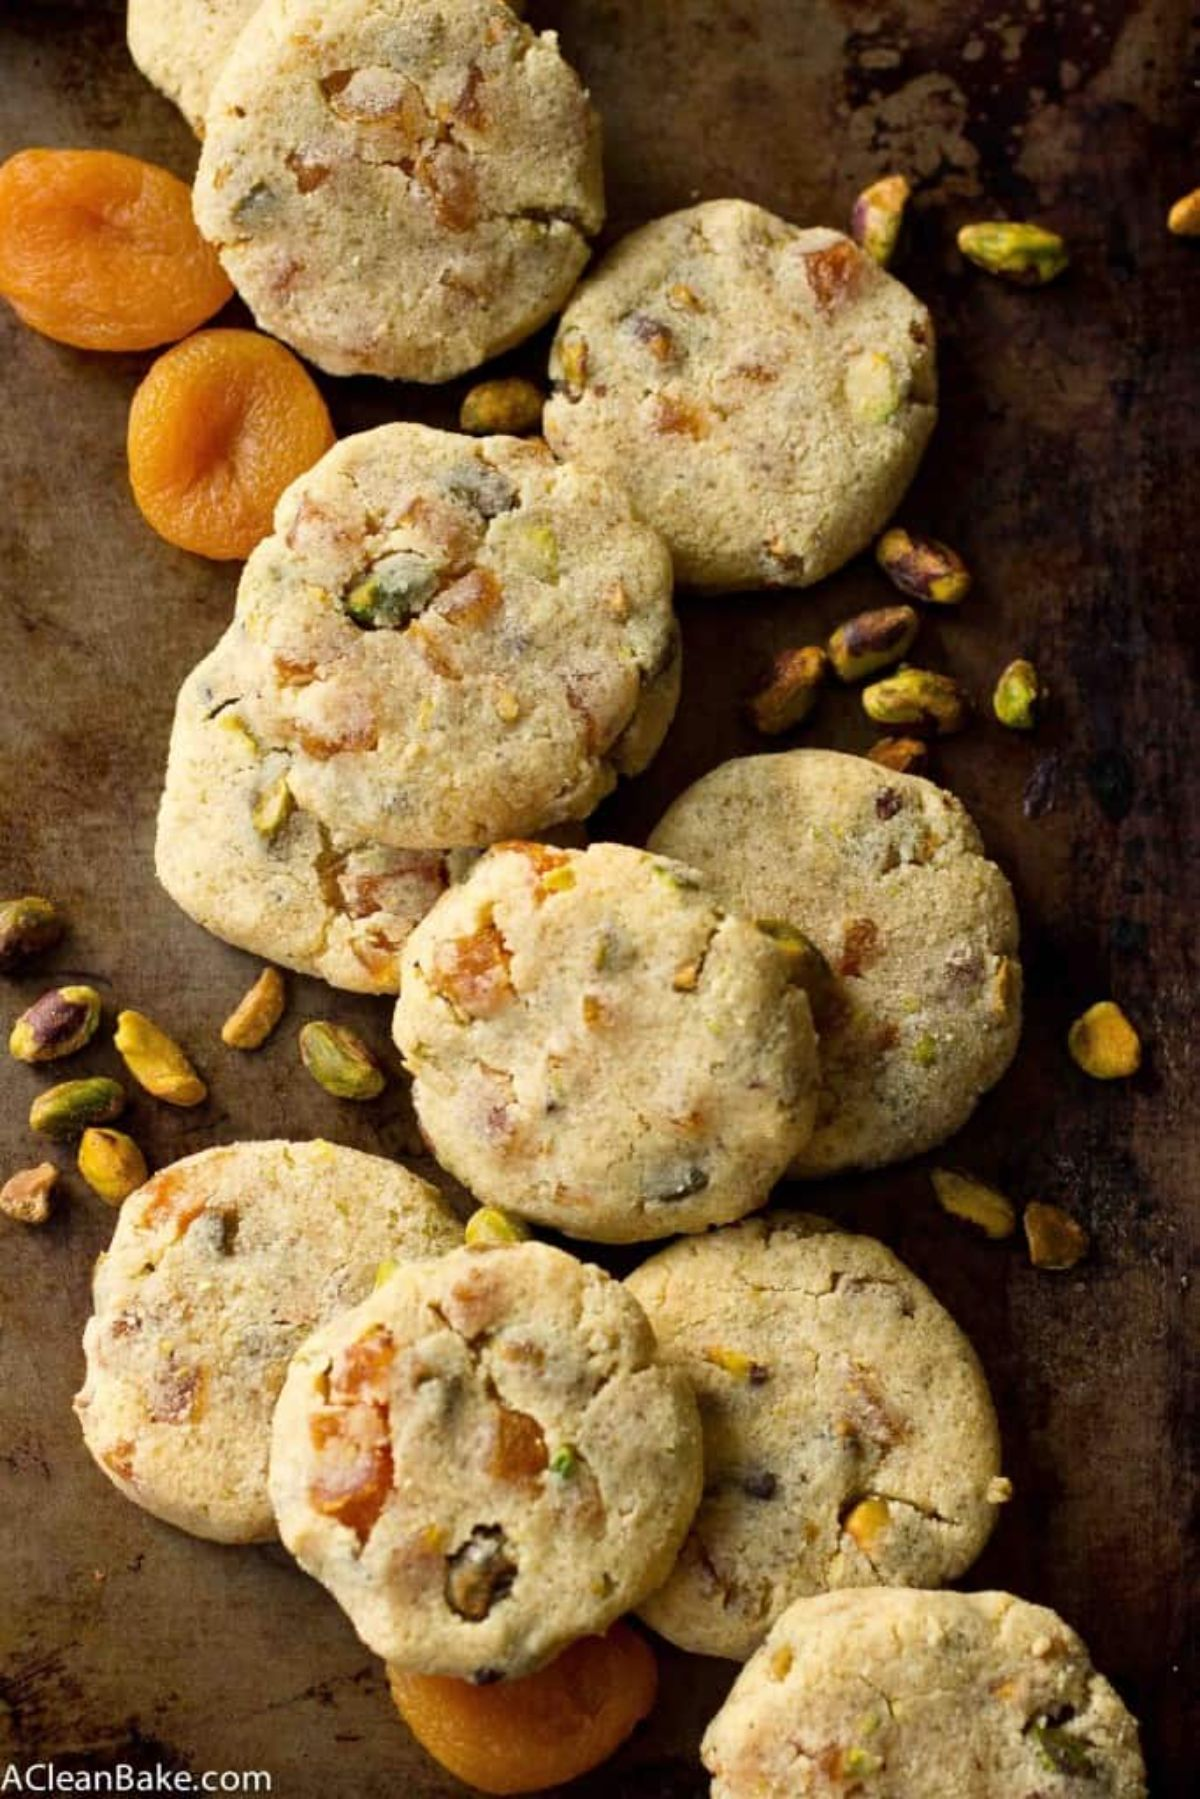 a pile of aprocot and pistachio biscuits with dried nuts and fruit scattered over them